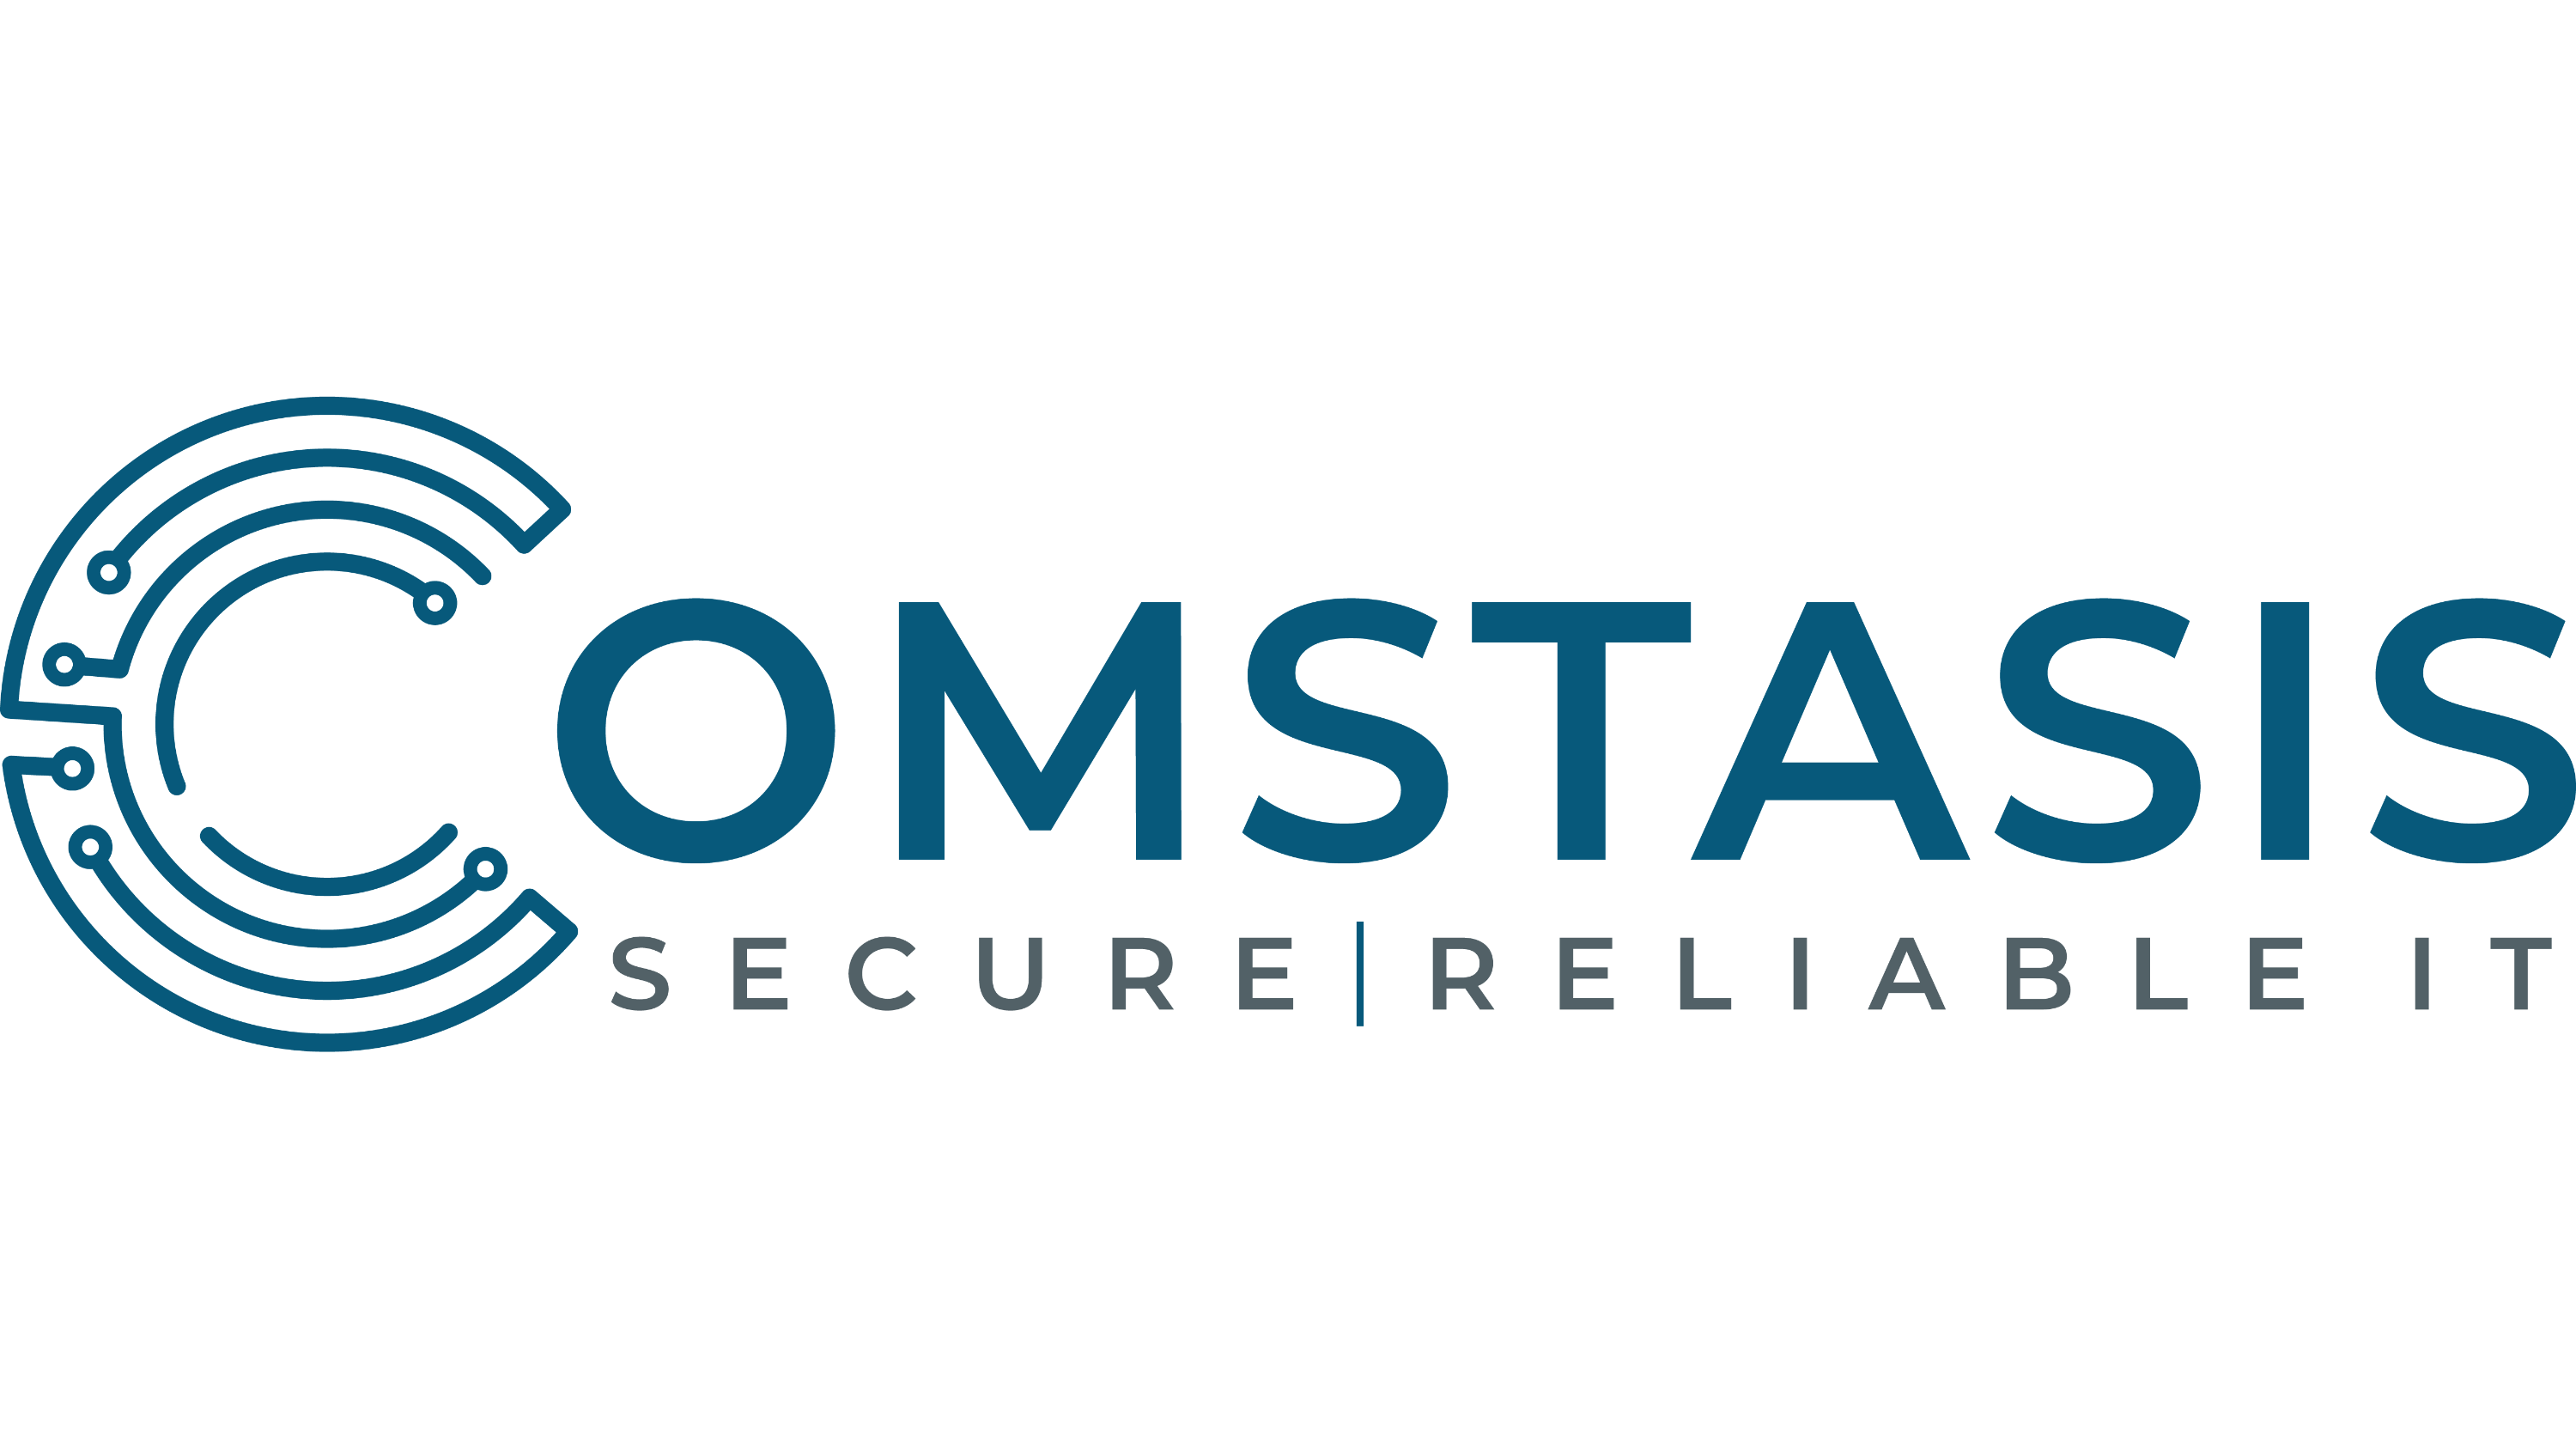 Comstasis: Secure | Reliable IT